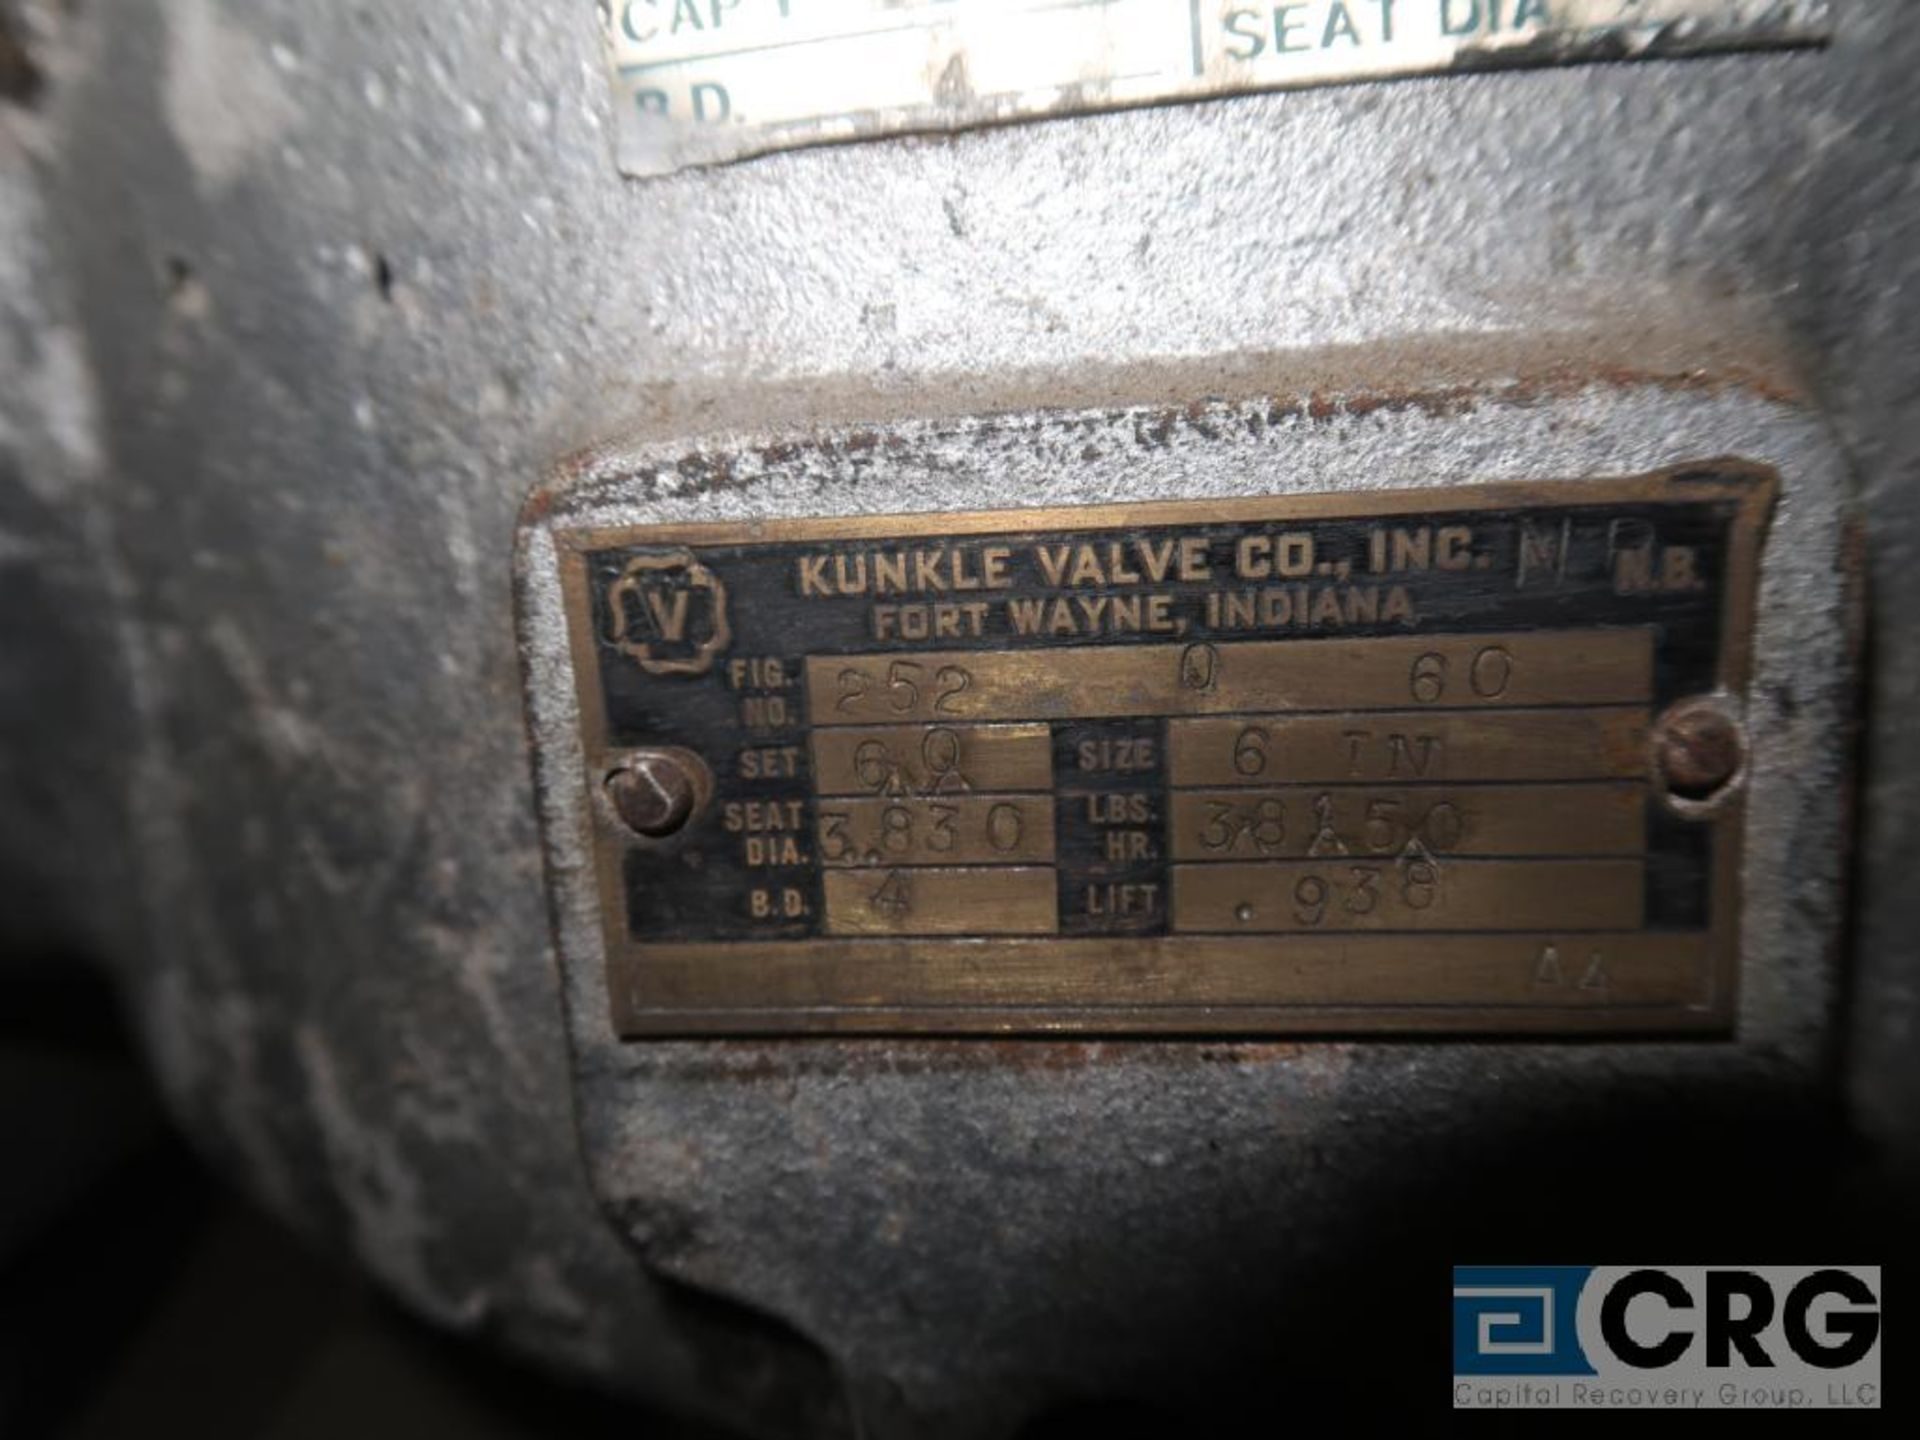 Lot of (2) 8 in. safety relief valves CL 150 (Store Basement) - Image 4 of 4